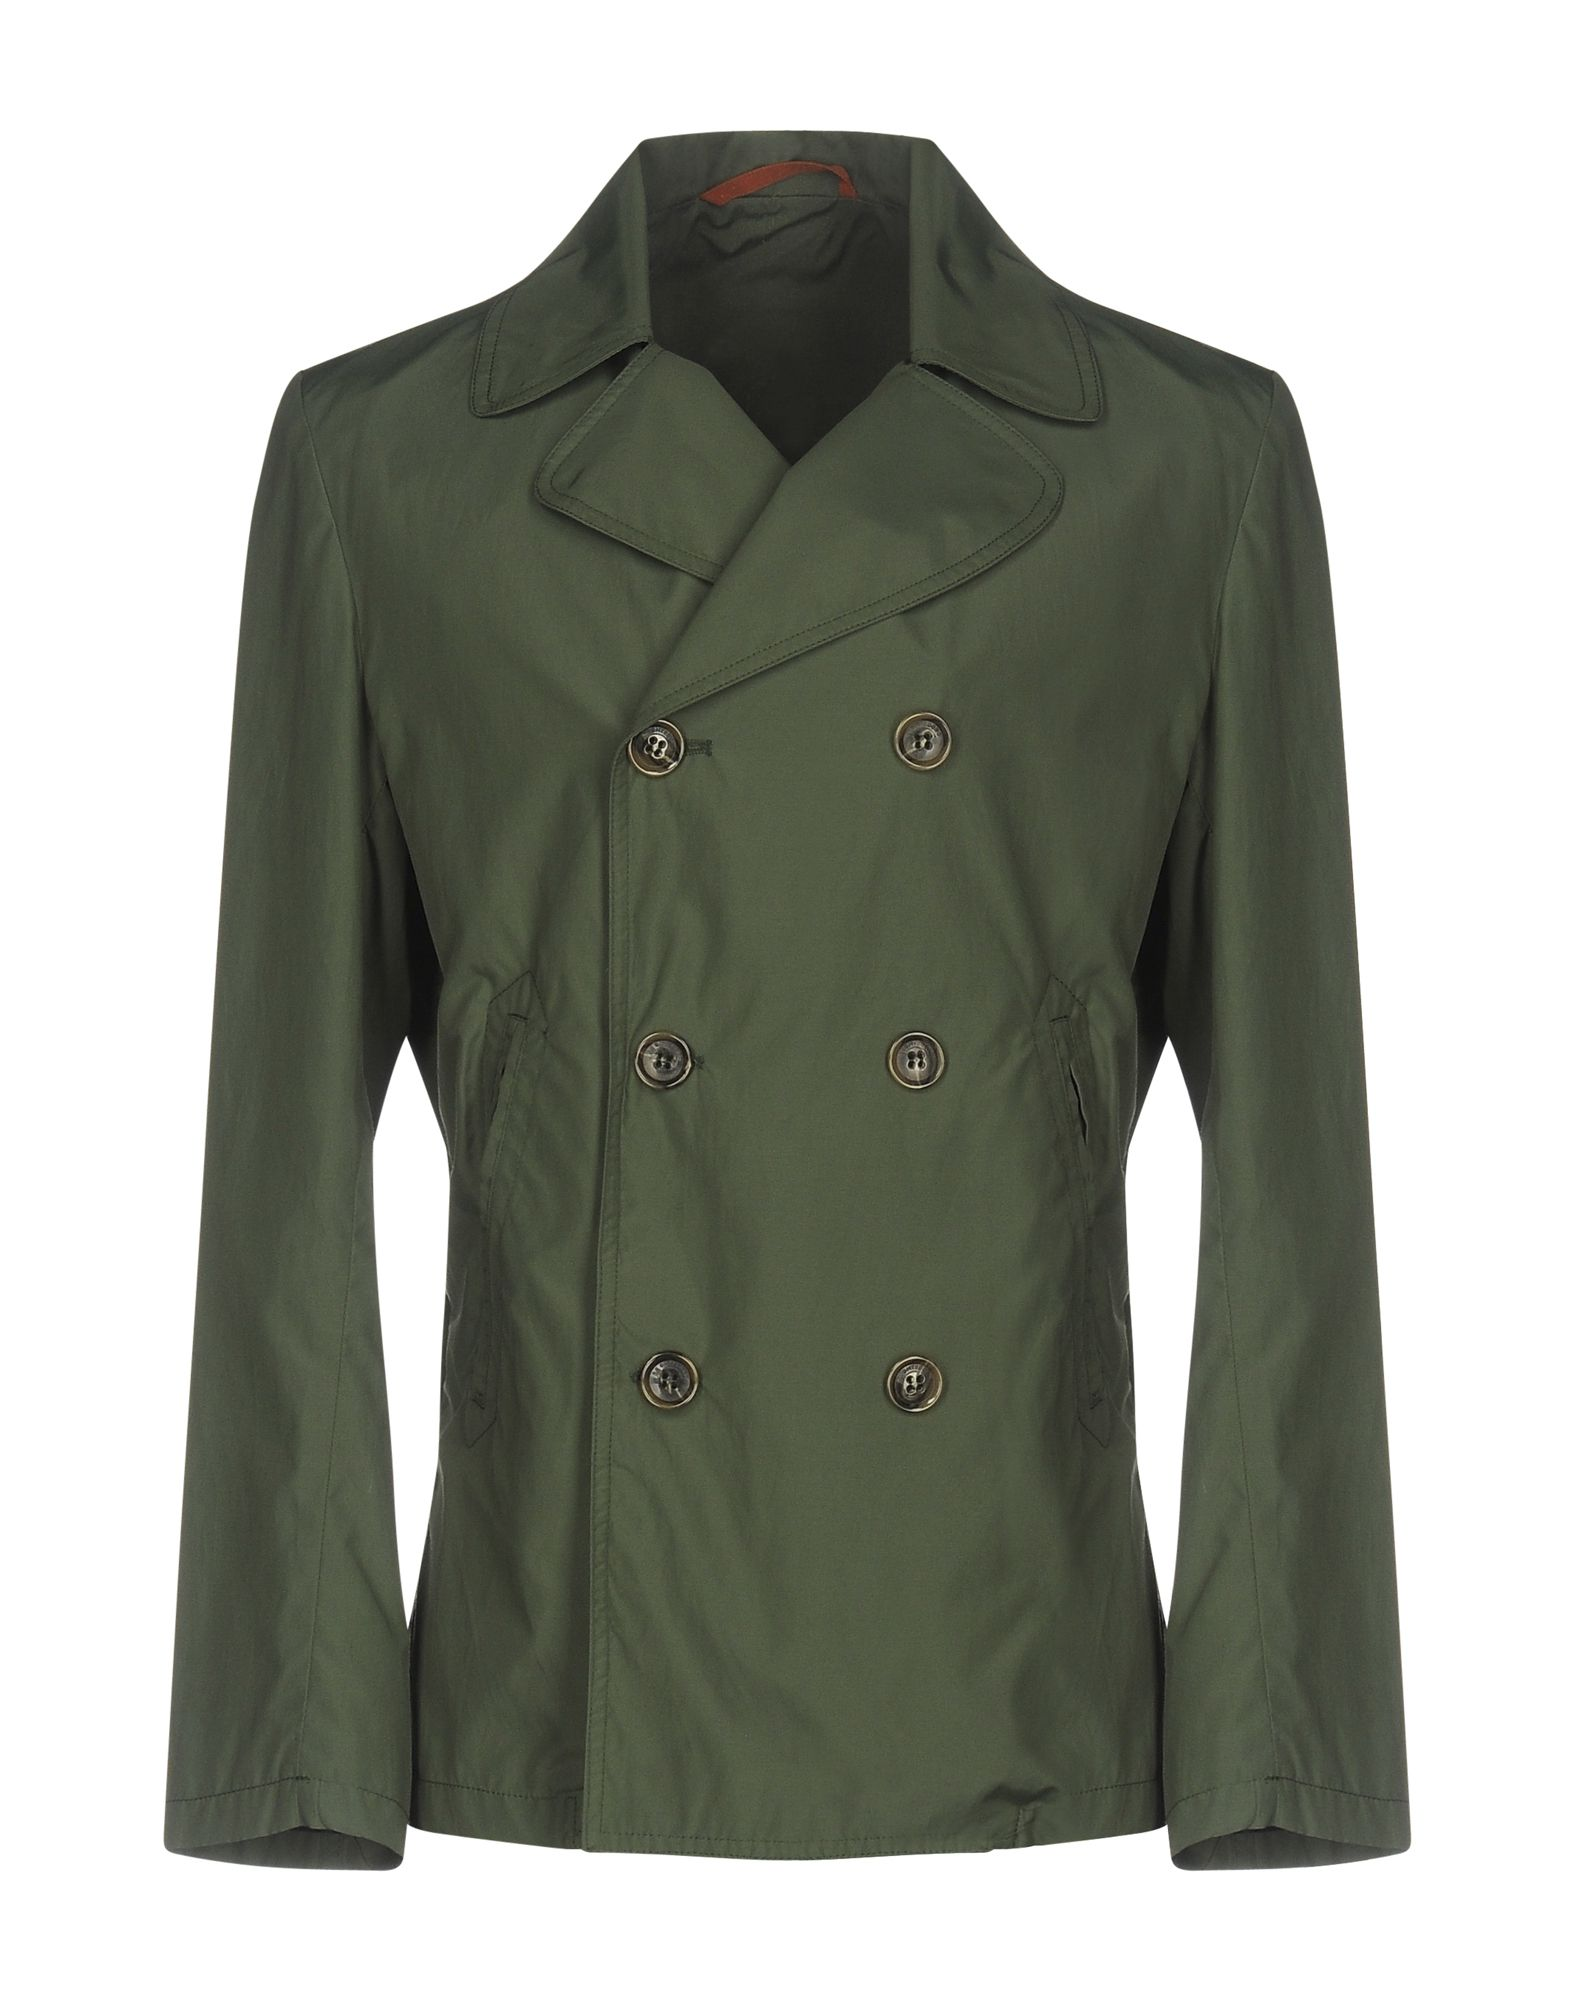 MONTEDORO Double Breasted Pea Coat in Military Green